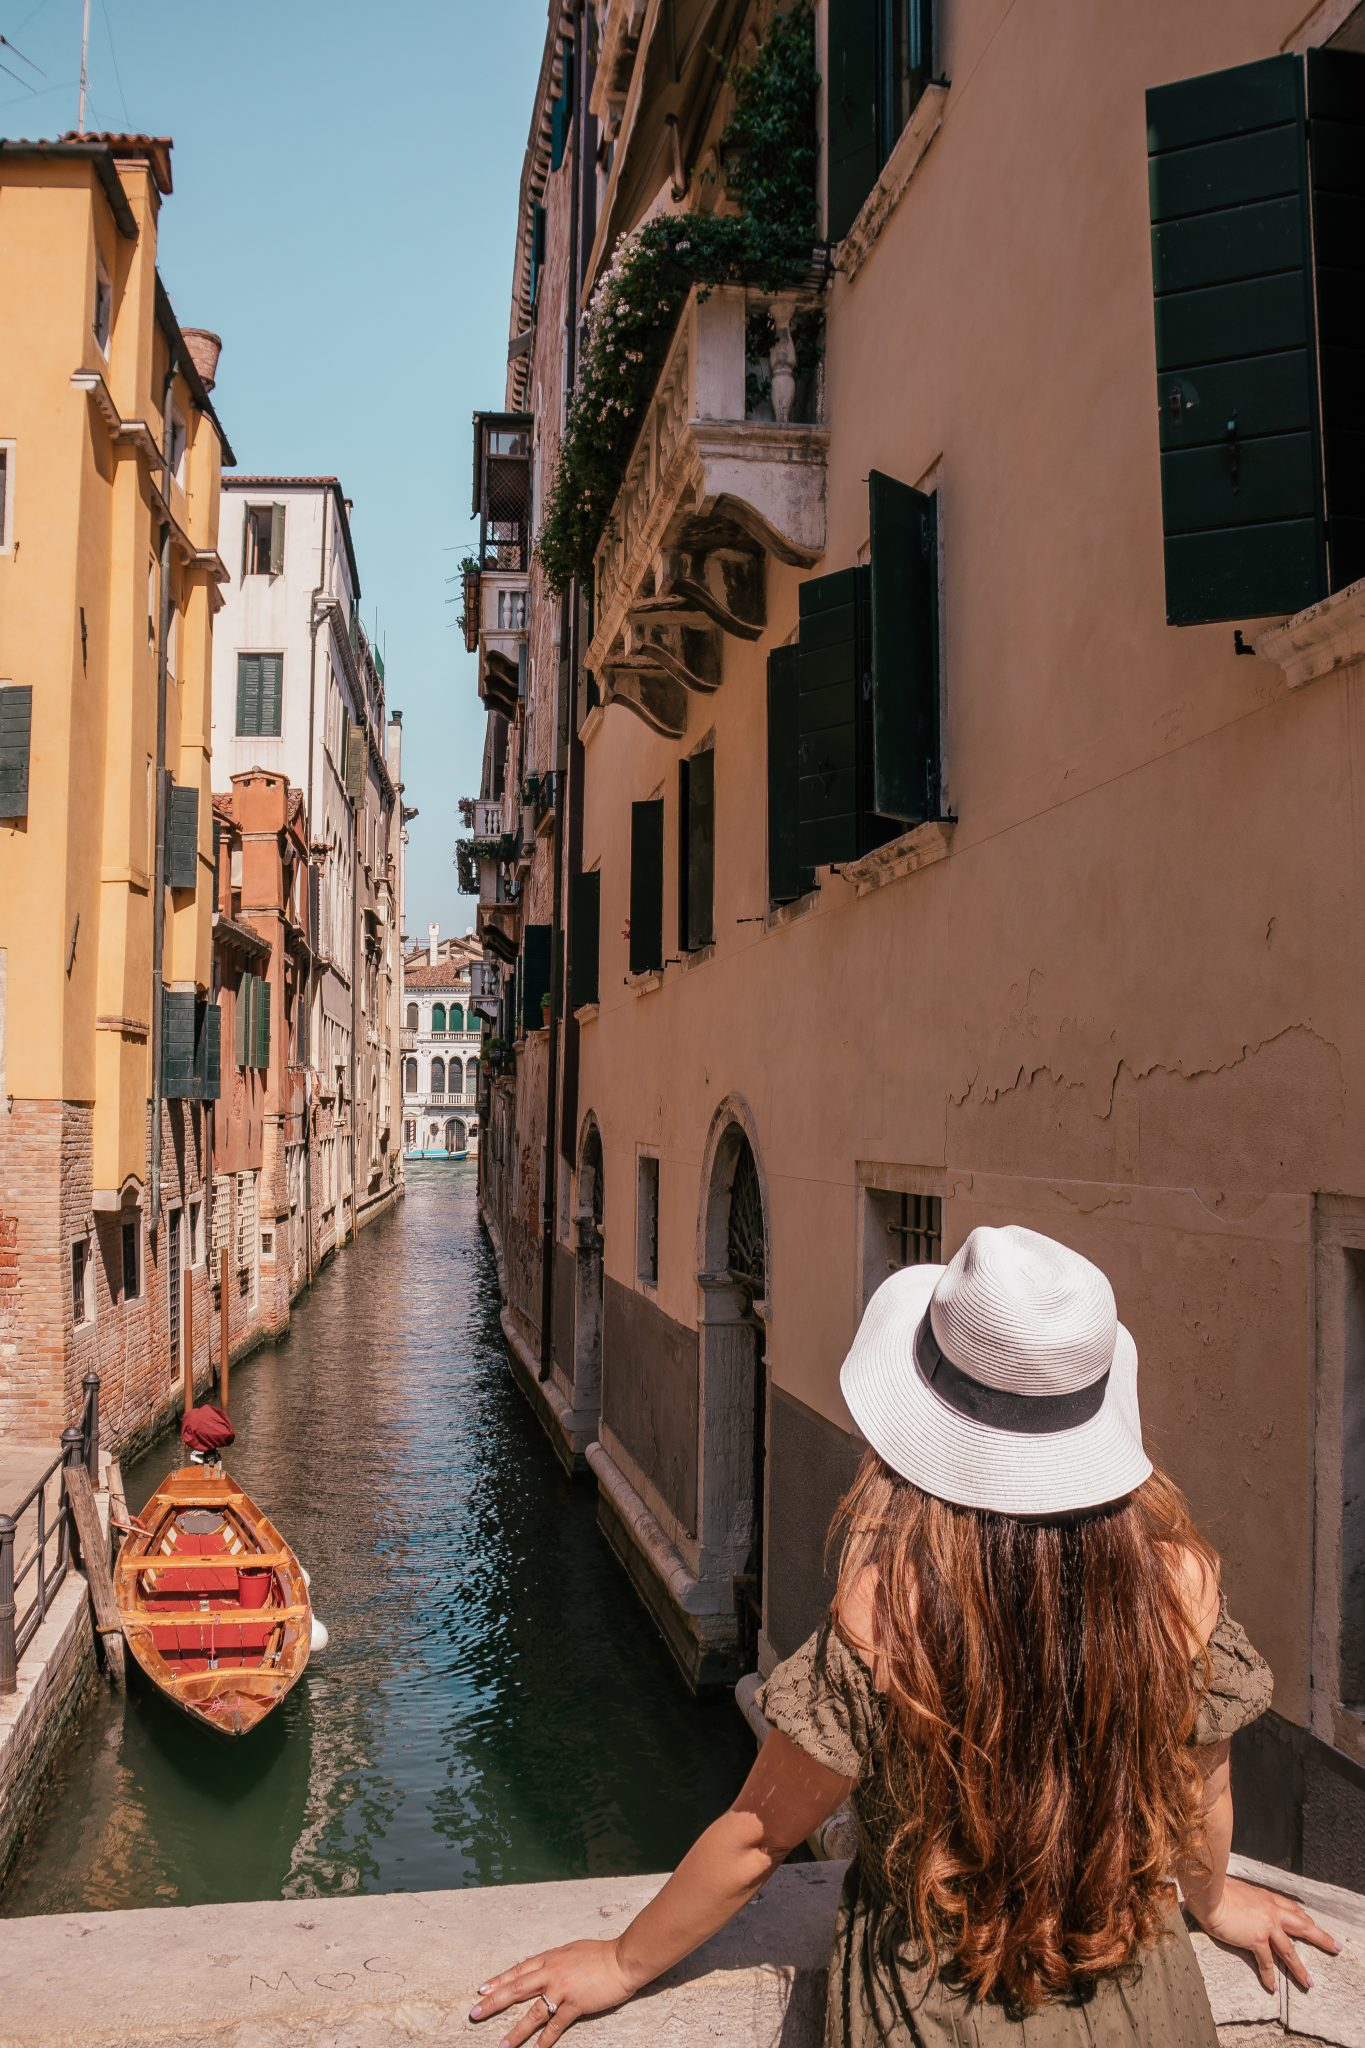 Most Instagrammable Places In Venice - small canals and bridges